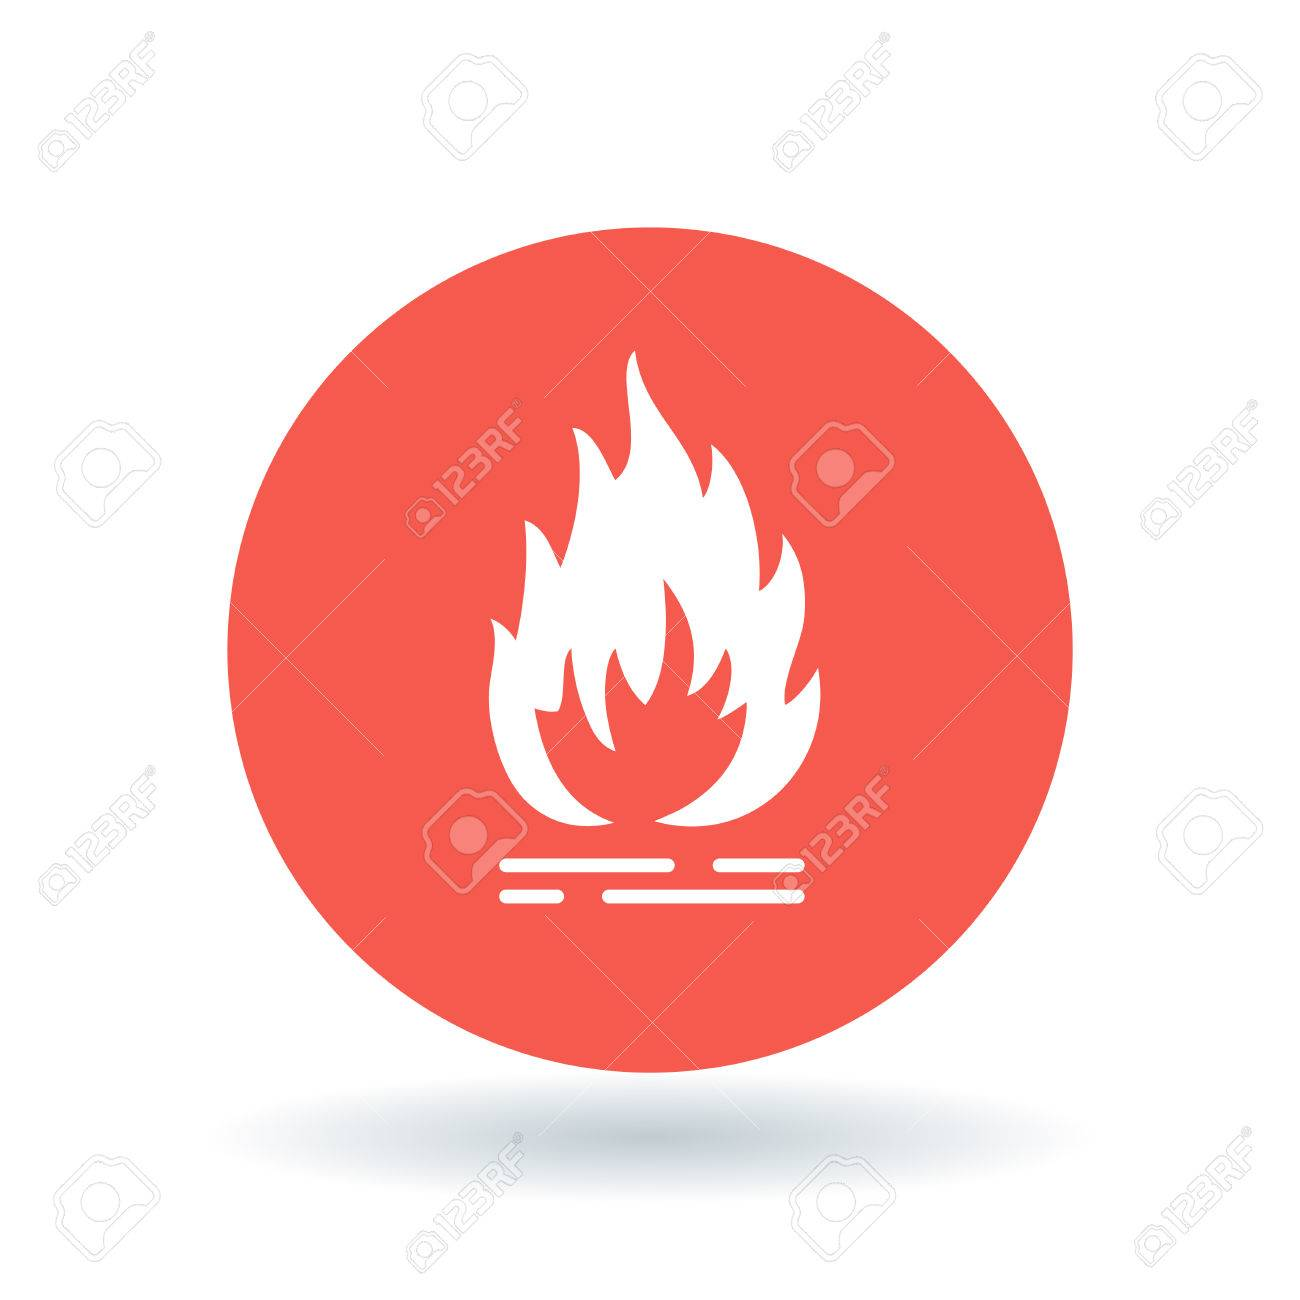 Fire icon flammable sign flame symbol white fire icon on red flame symbol white fire icon on red circle background buycottarizona Image collections